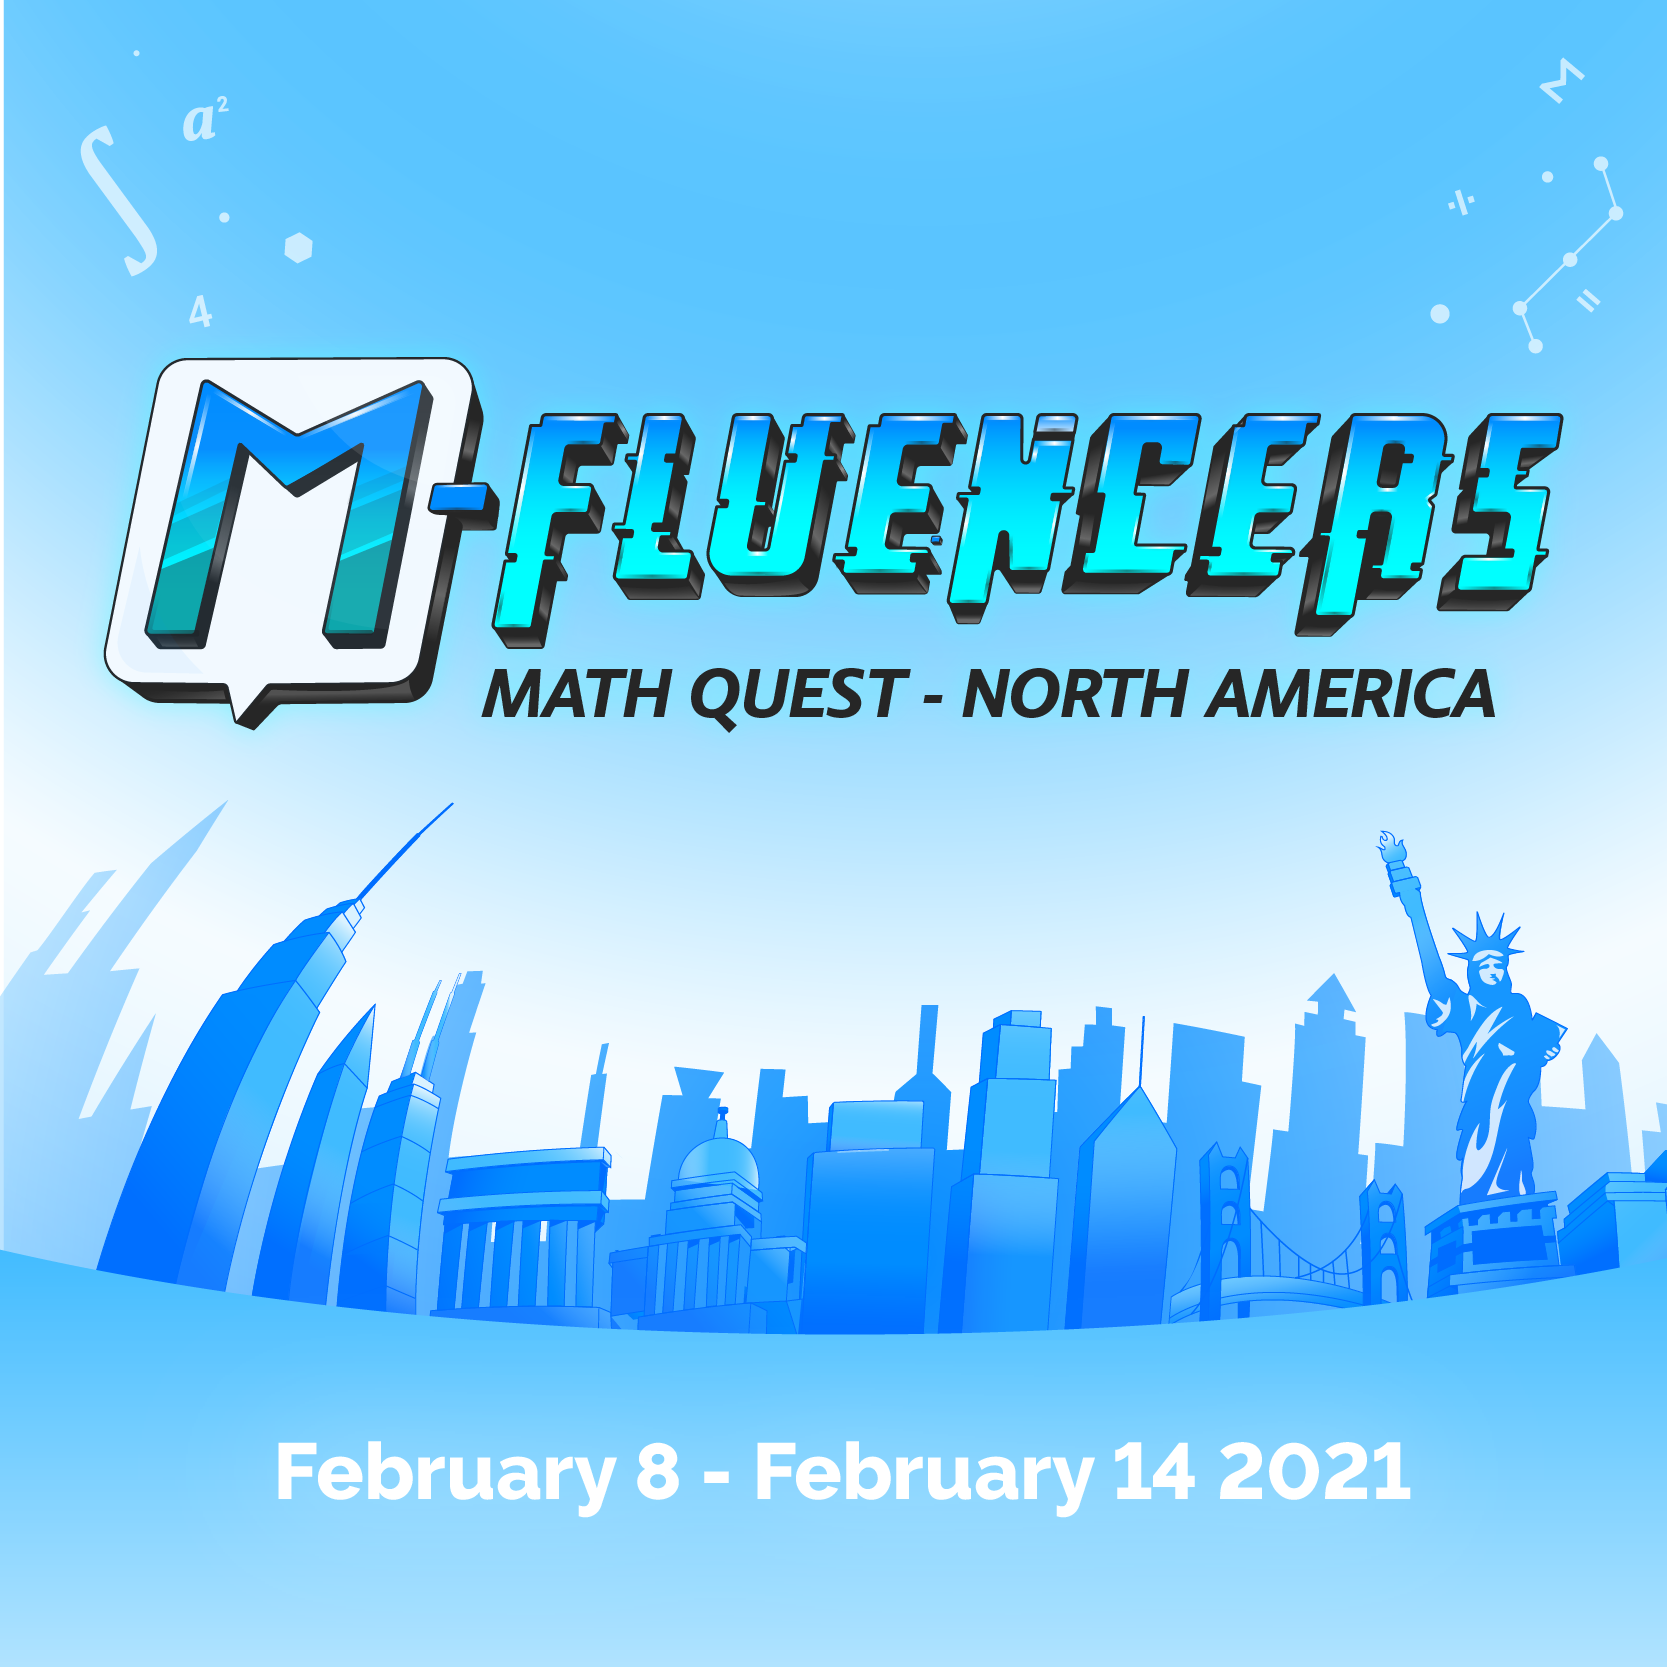 M-Fluencers Math Quest - North America